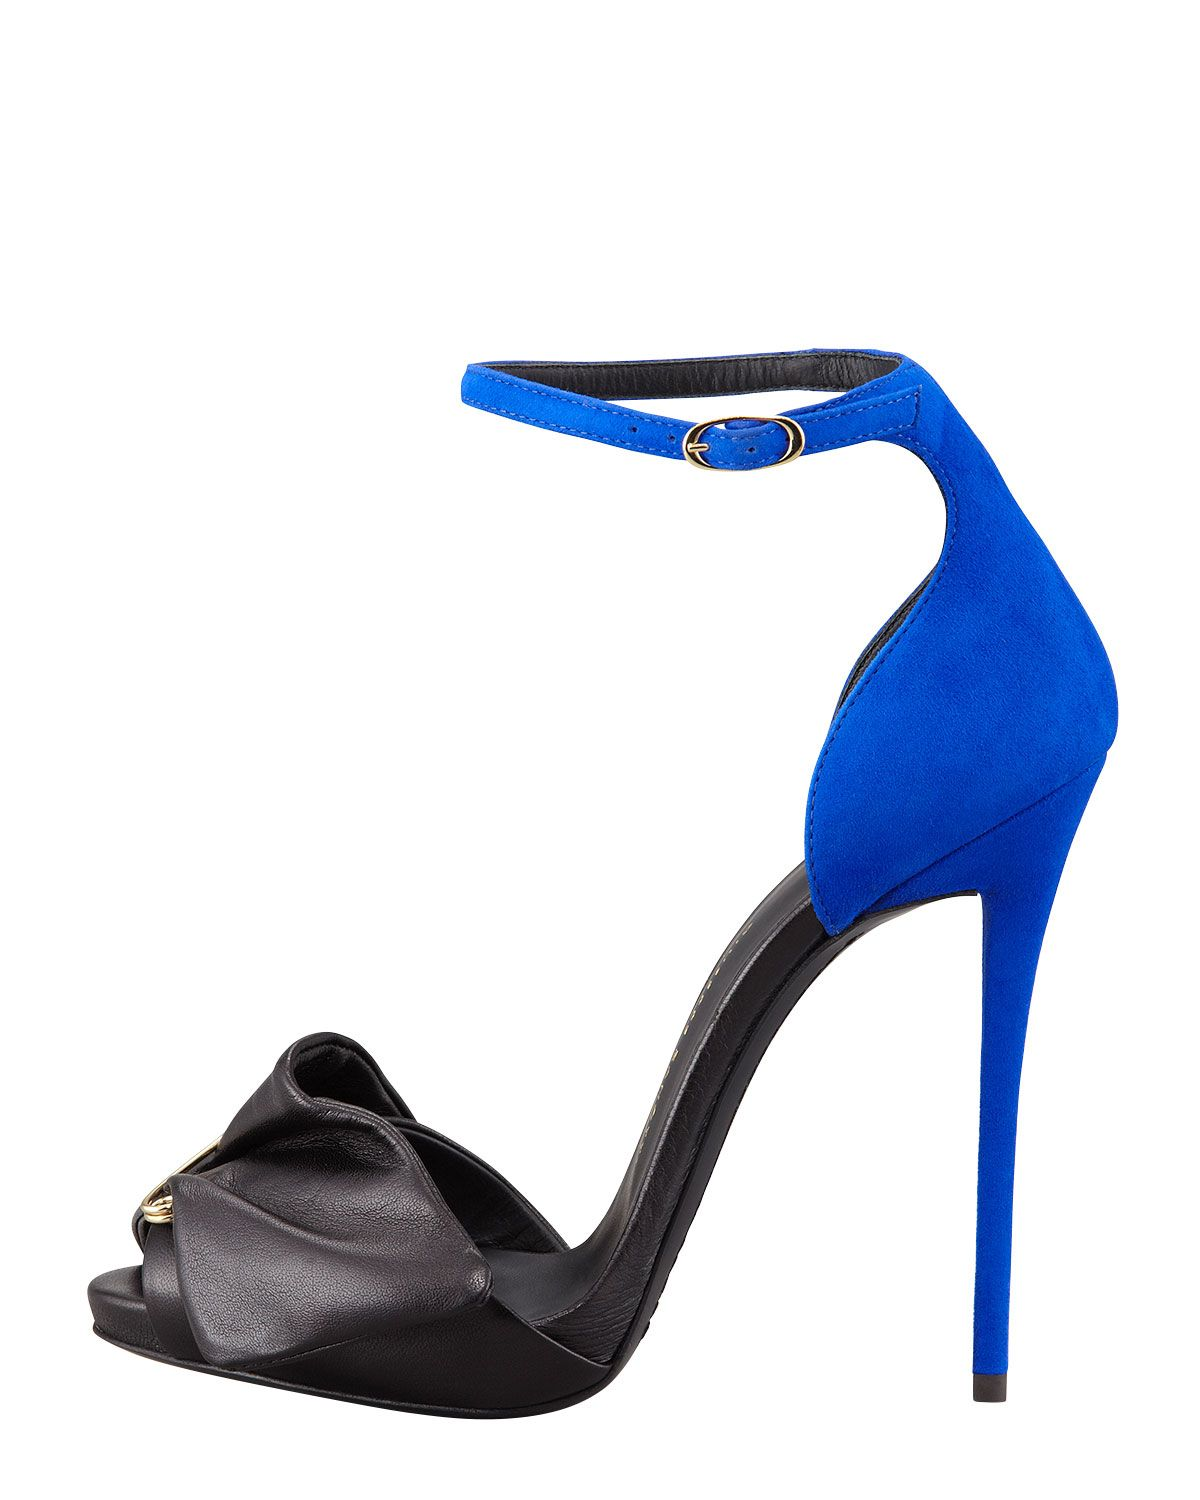 7bf948d4d0b85 Giuseppe Zanotti Safety Pin Leather & Suede Sandal, Black/Blue - Neiman  Marcus